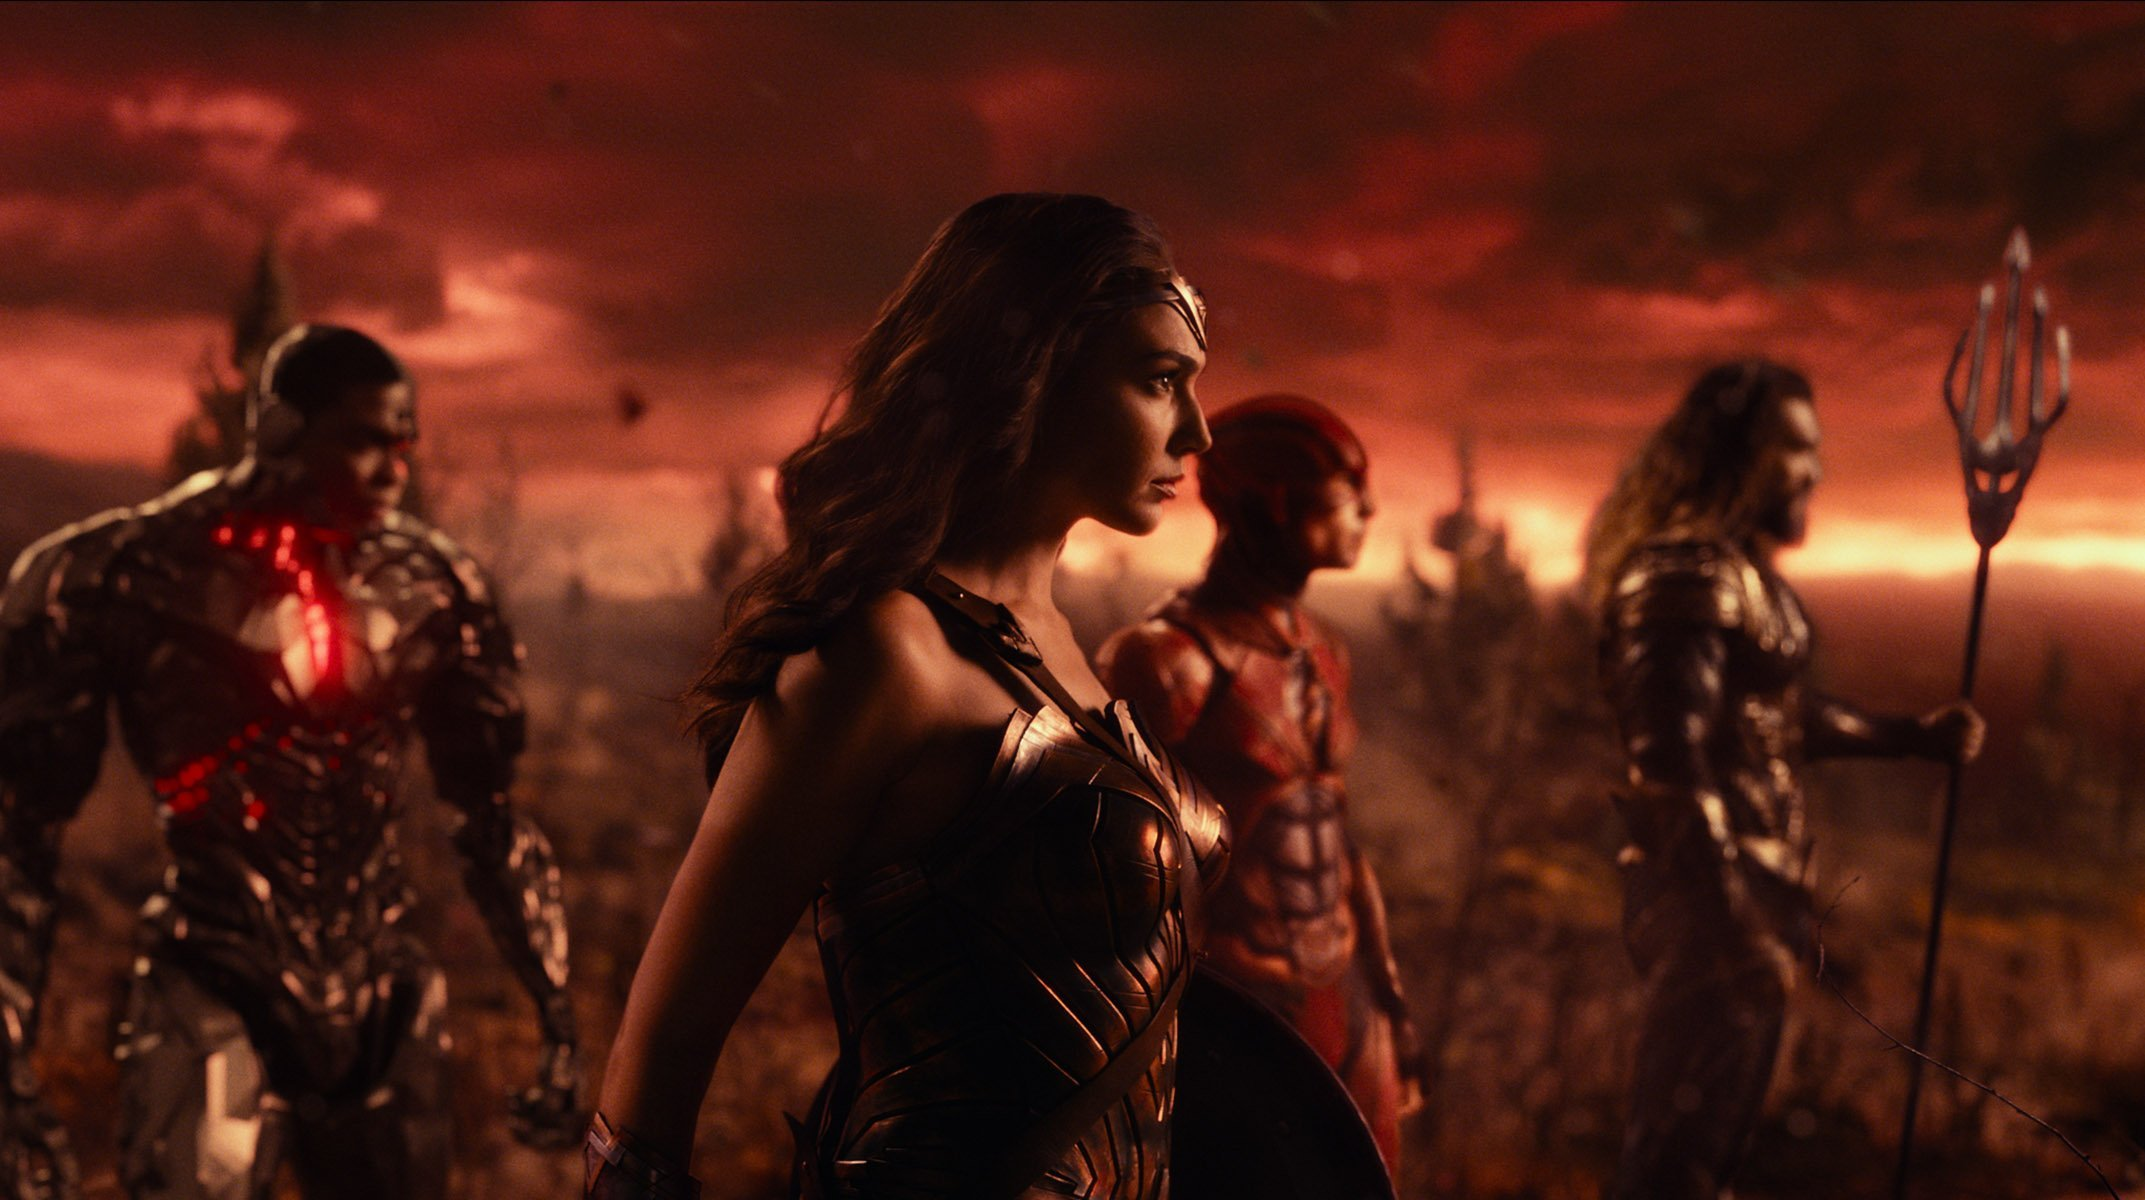 Photo du film Justice League avec l'équipe